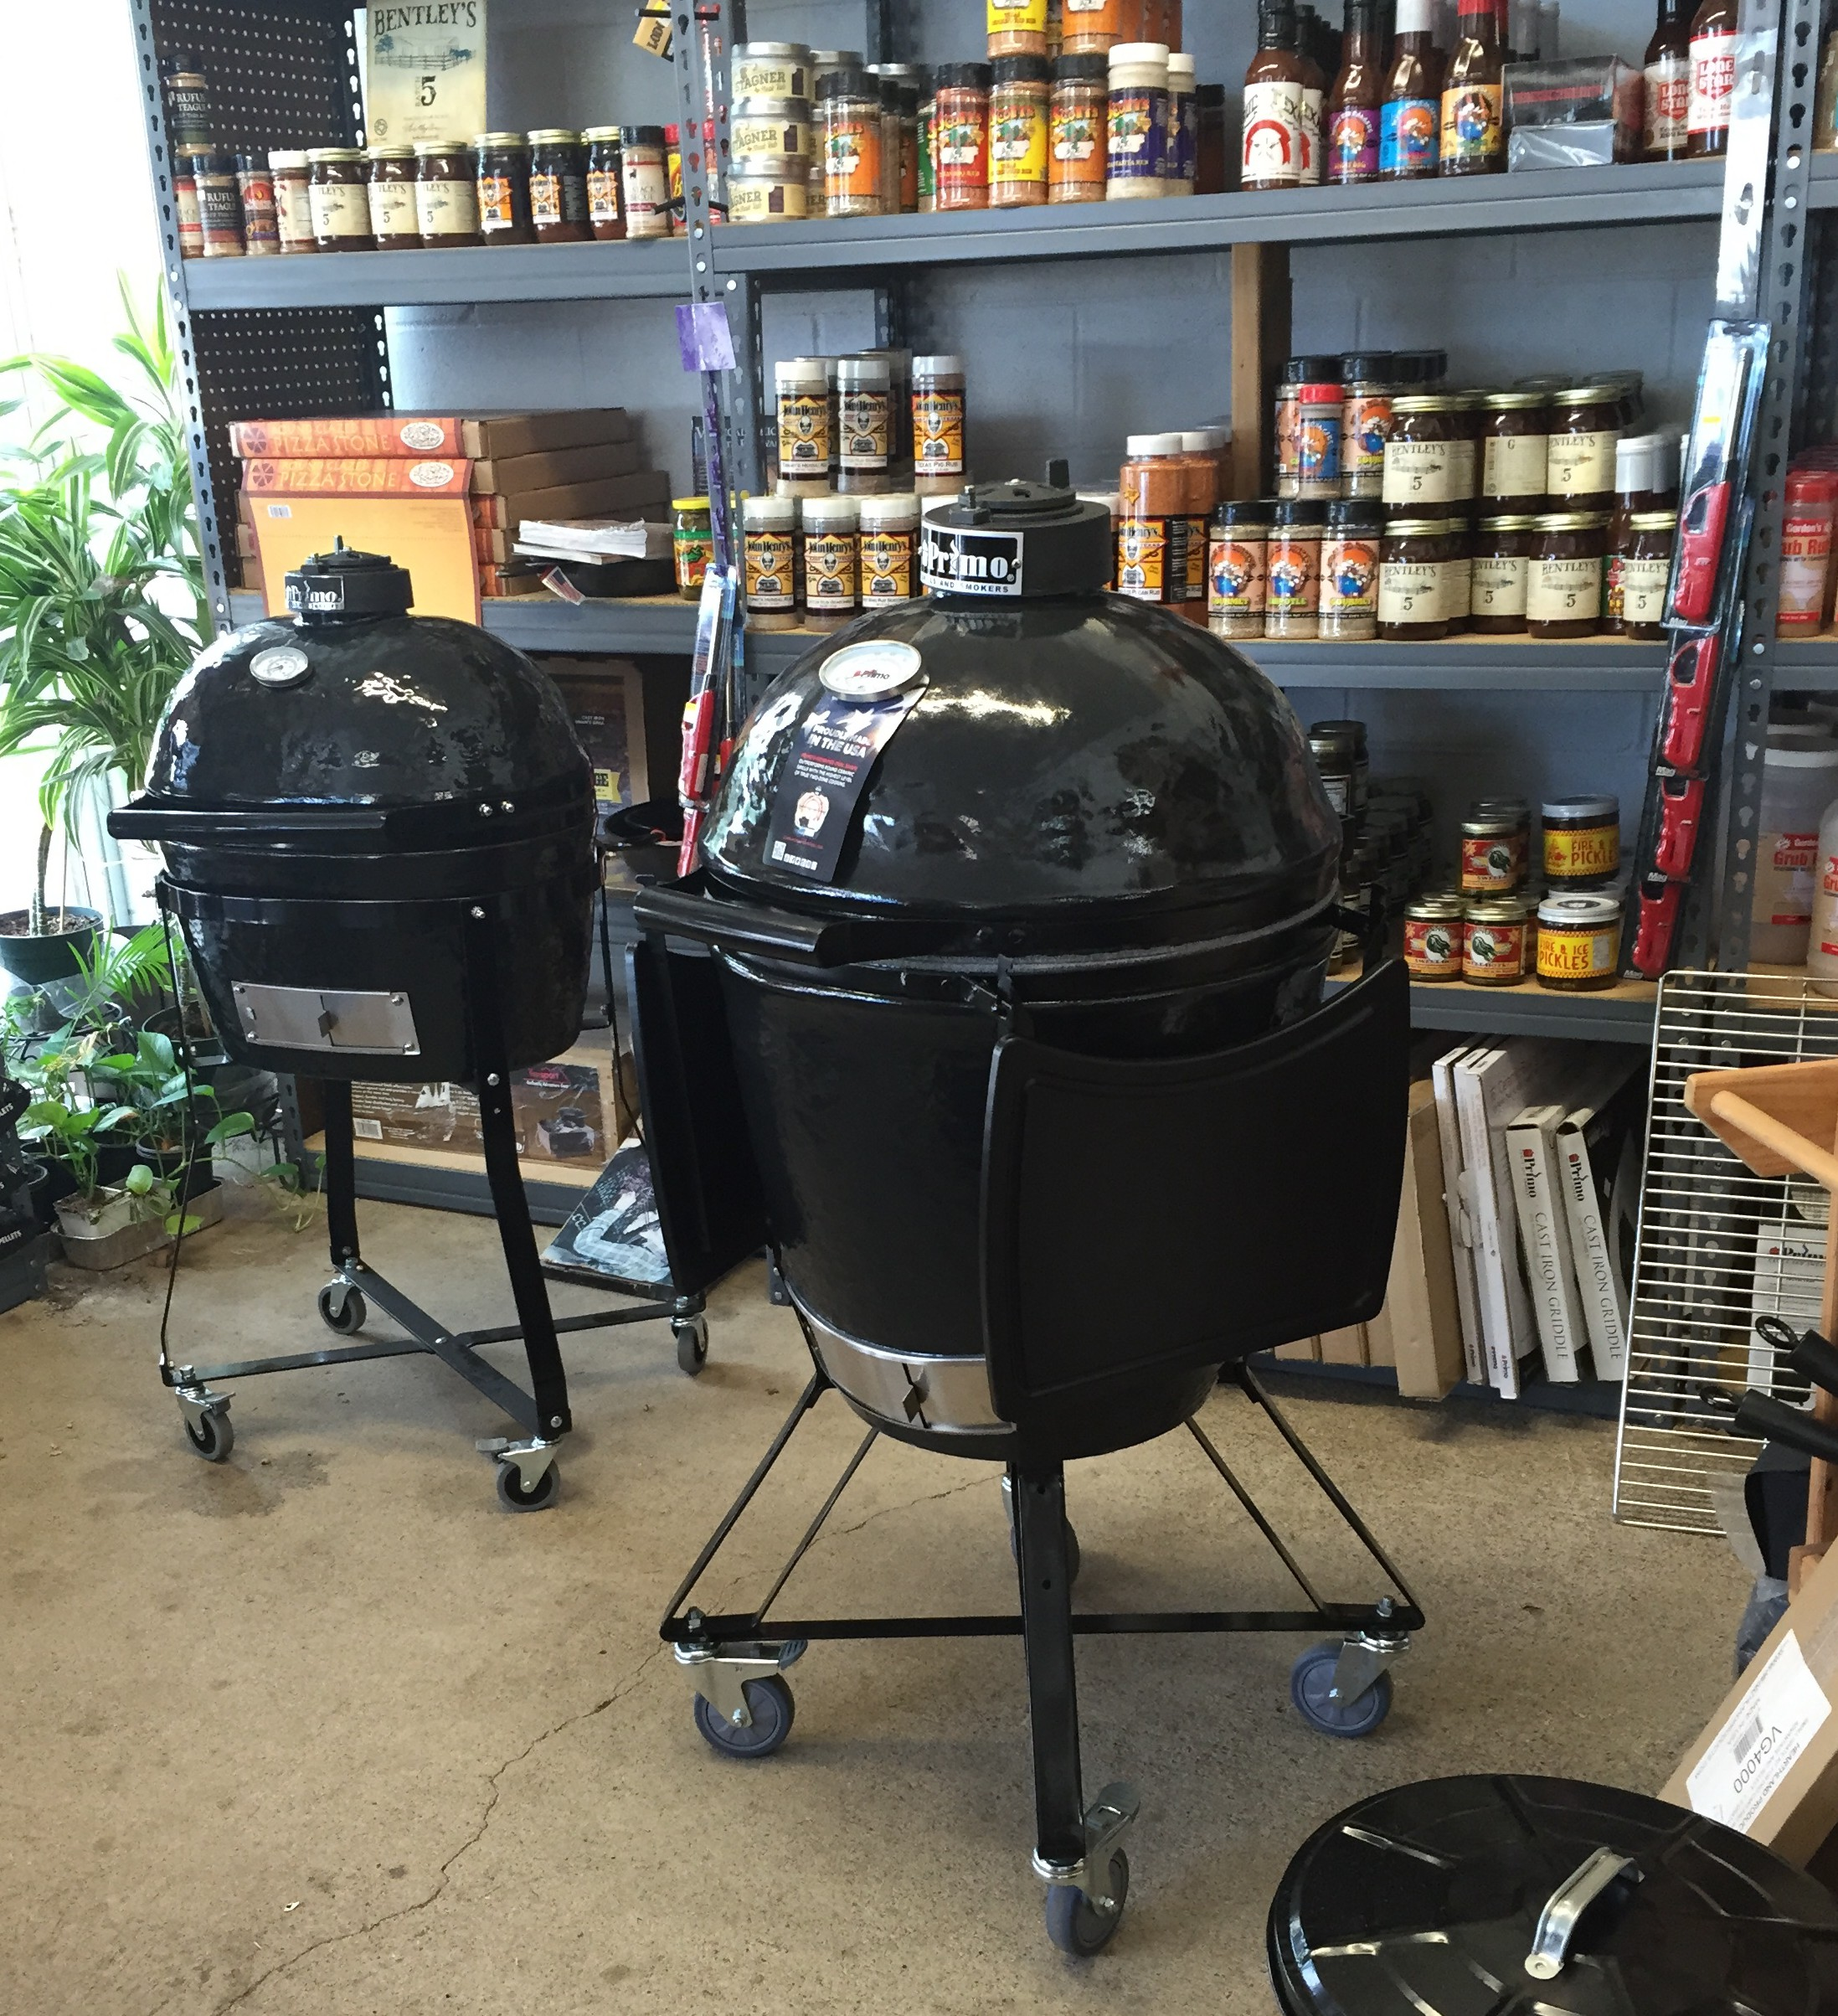 primo oval beats round every time general store proudly carries primo grills - Primo Grills